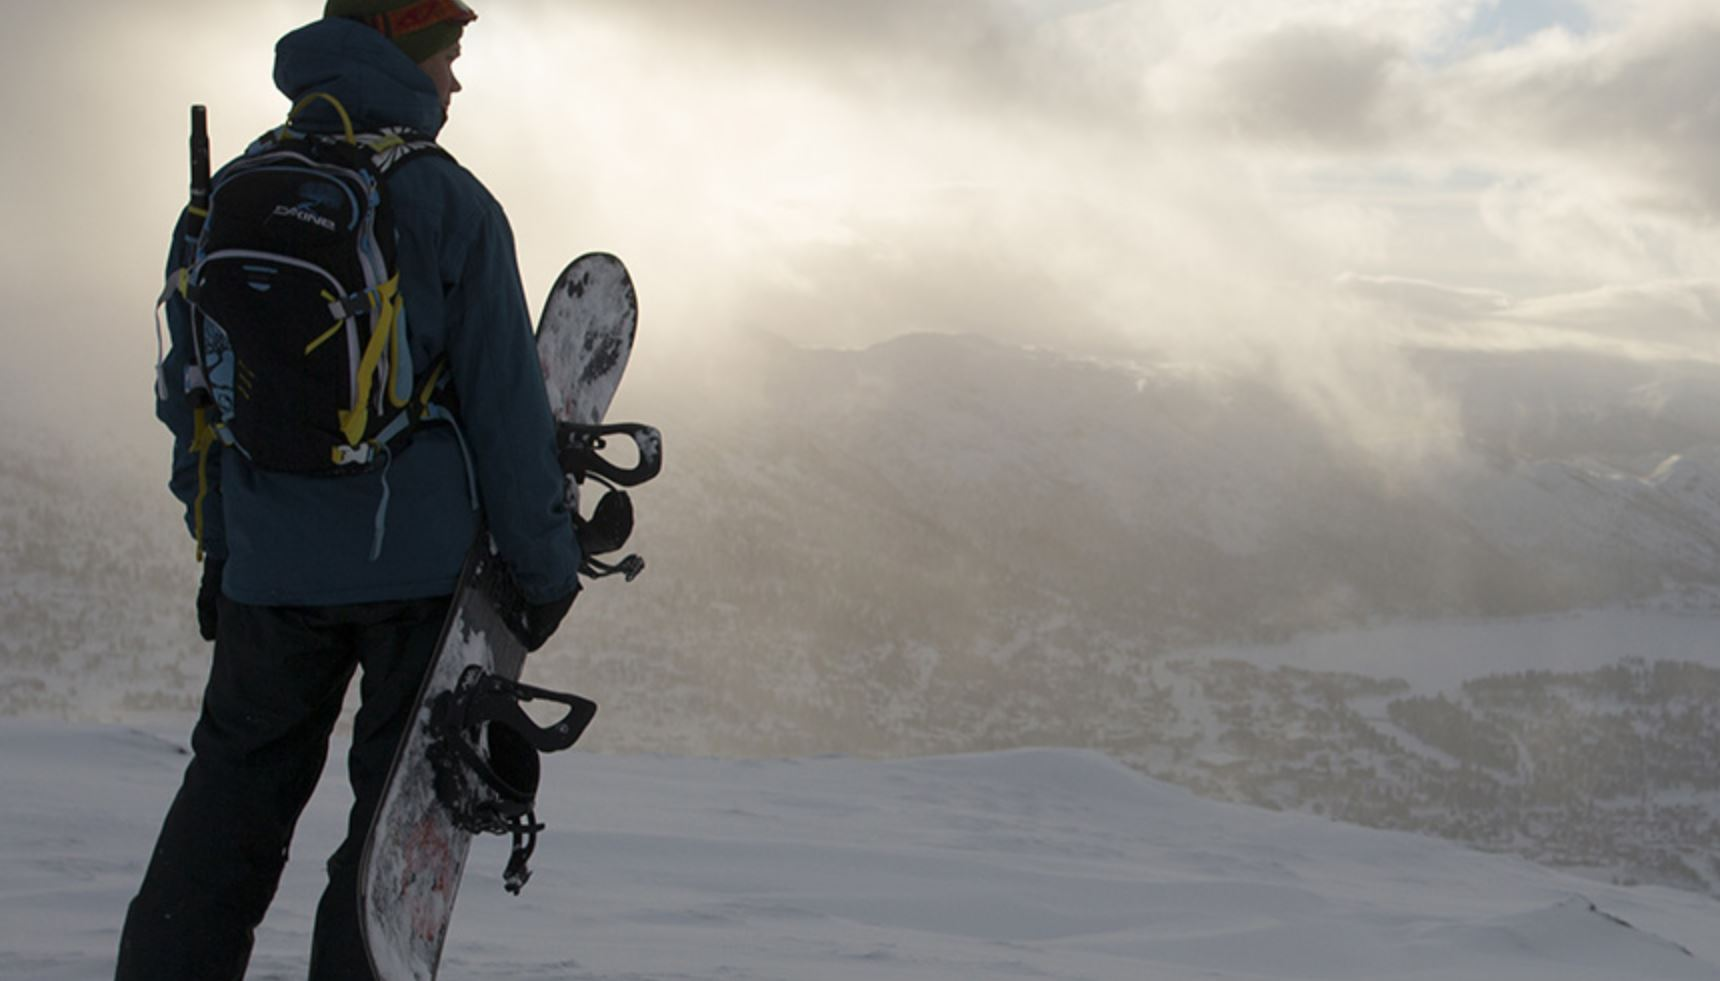 Rent Ski and Snowboard boots from Ridden in Breckenridge, CO